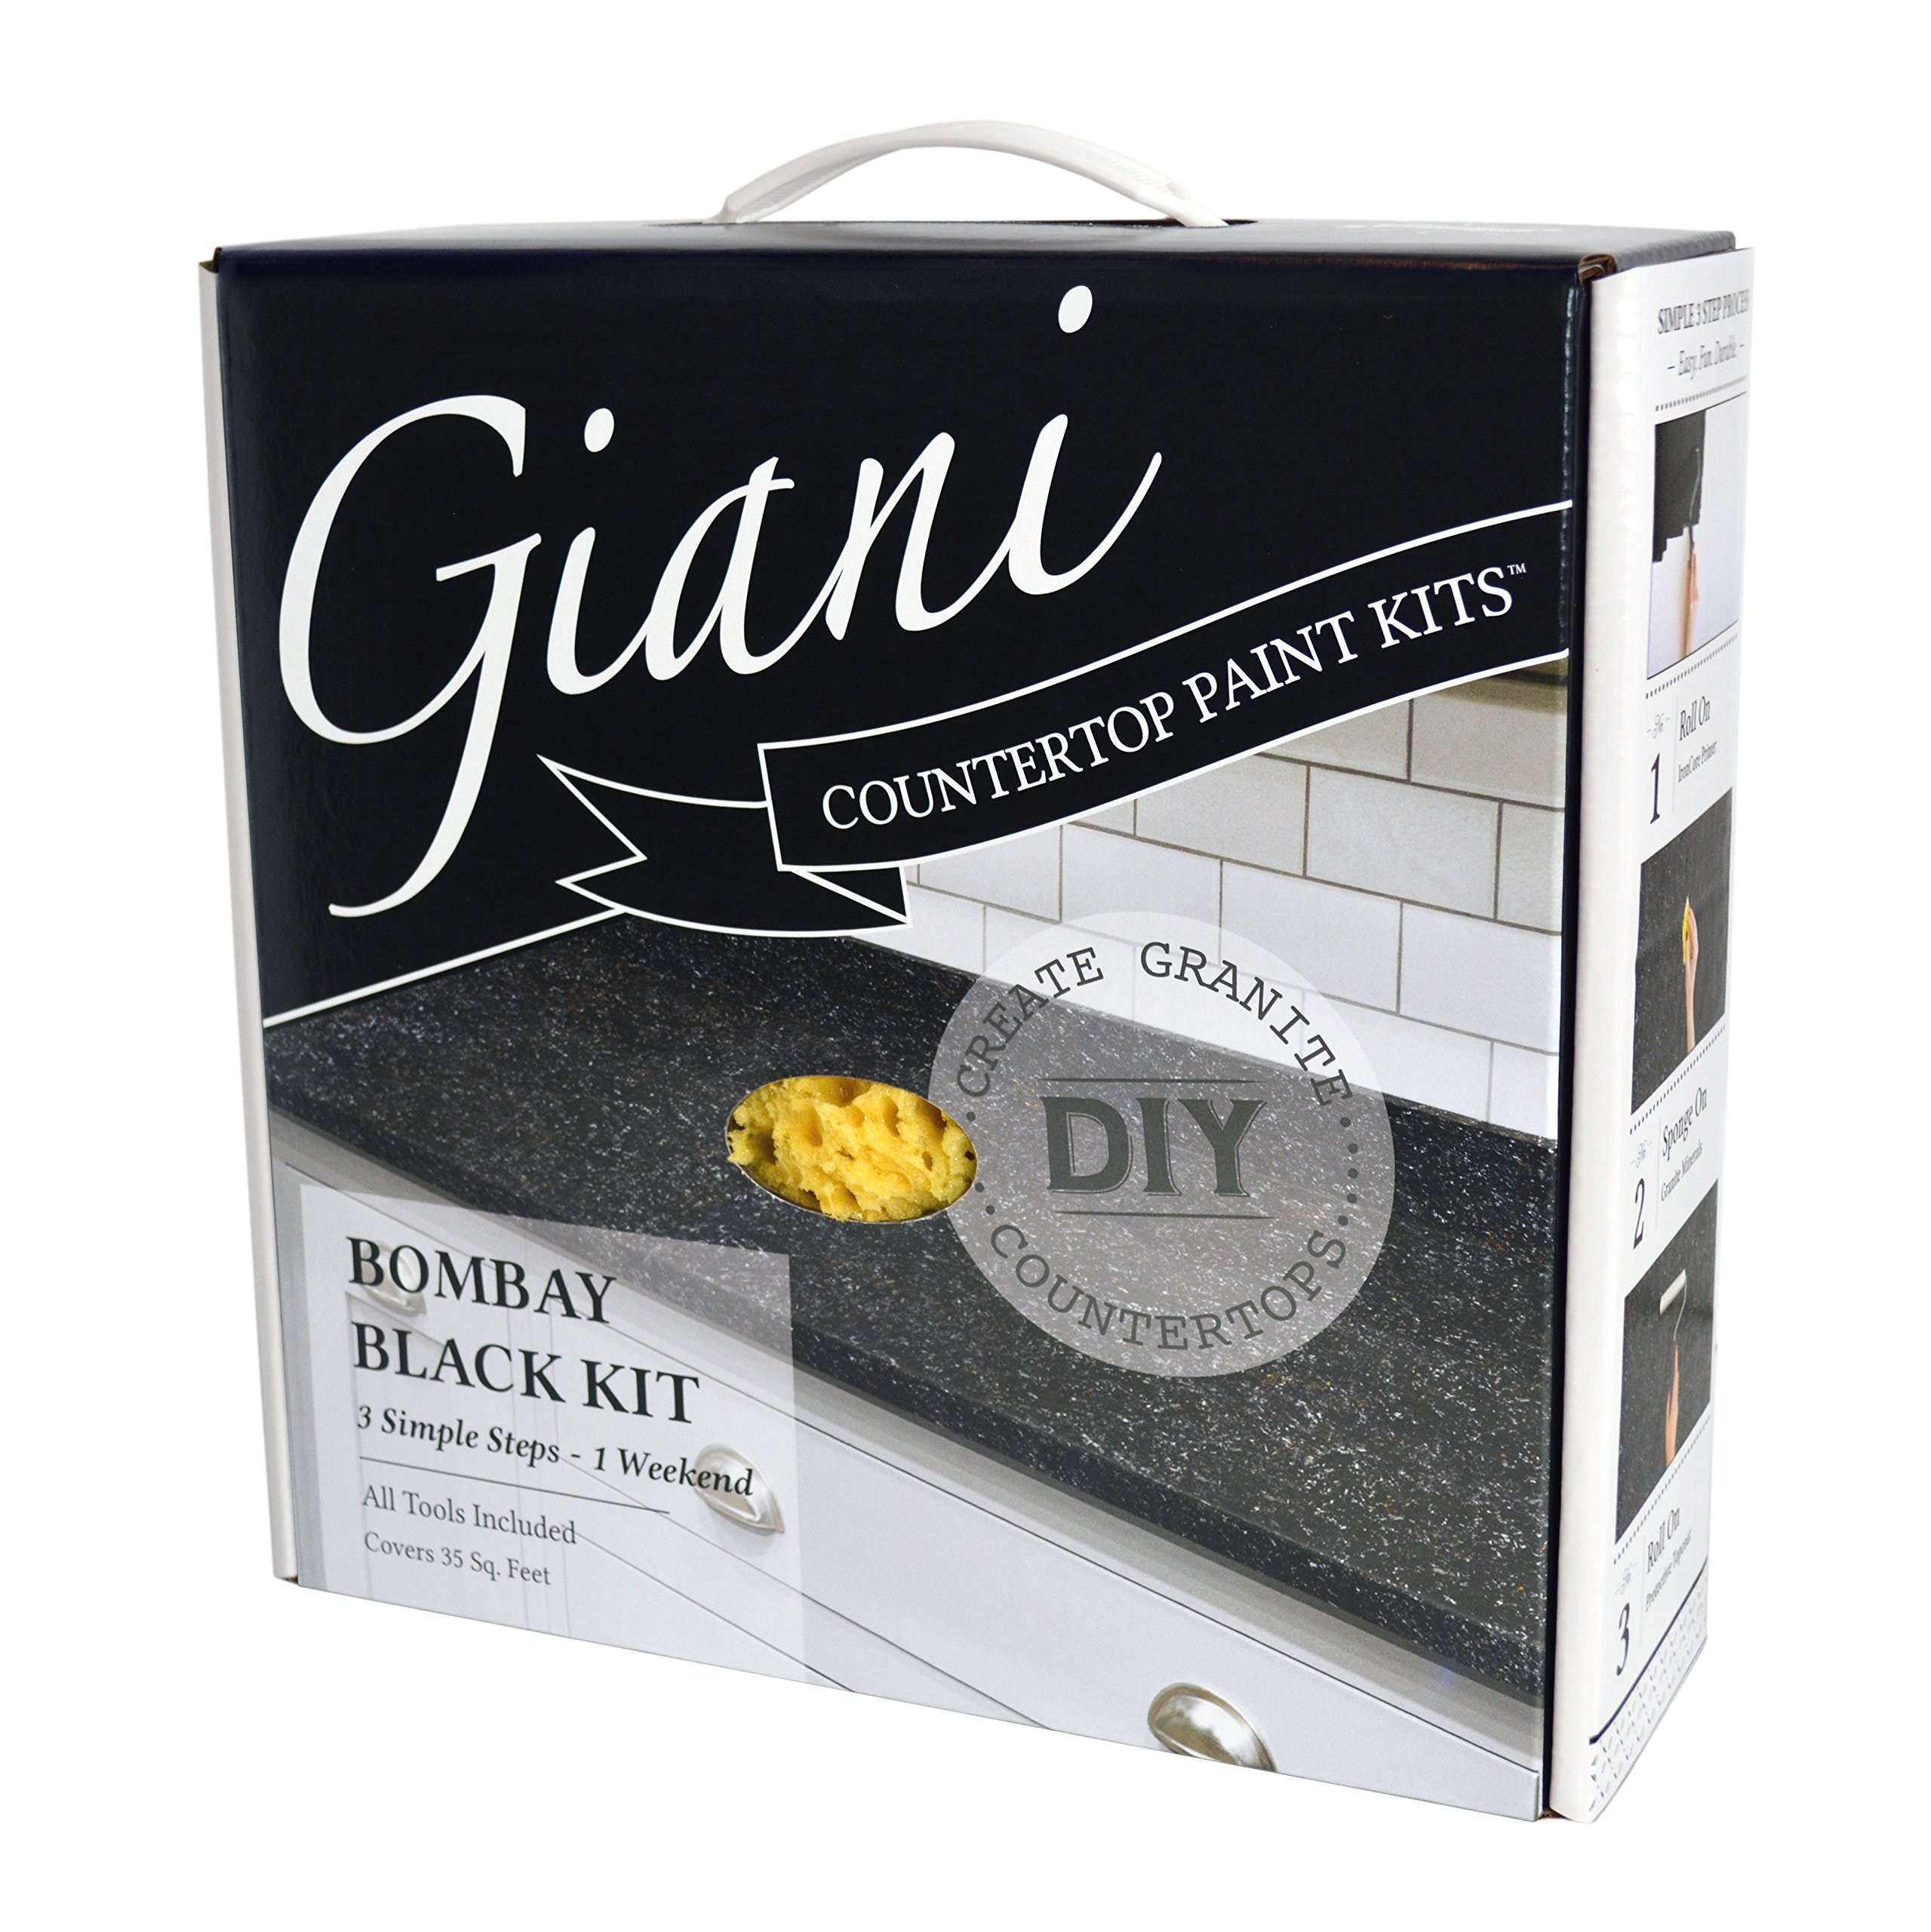 Giani Countertop Paint Kit (Bombay Black)